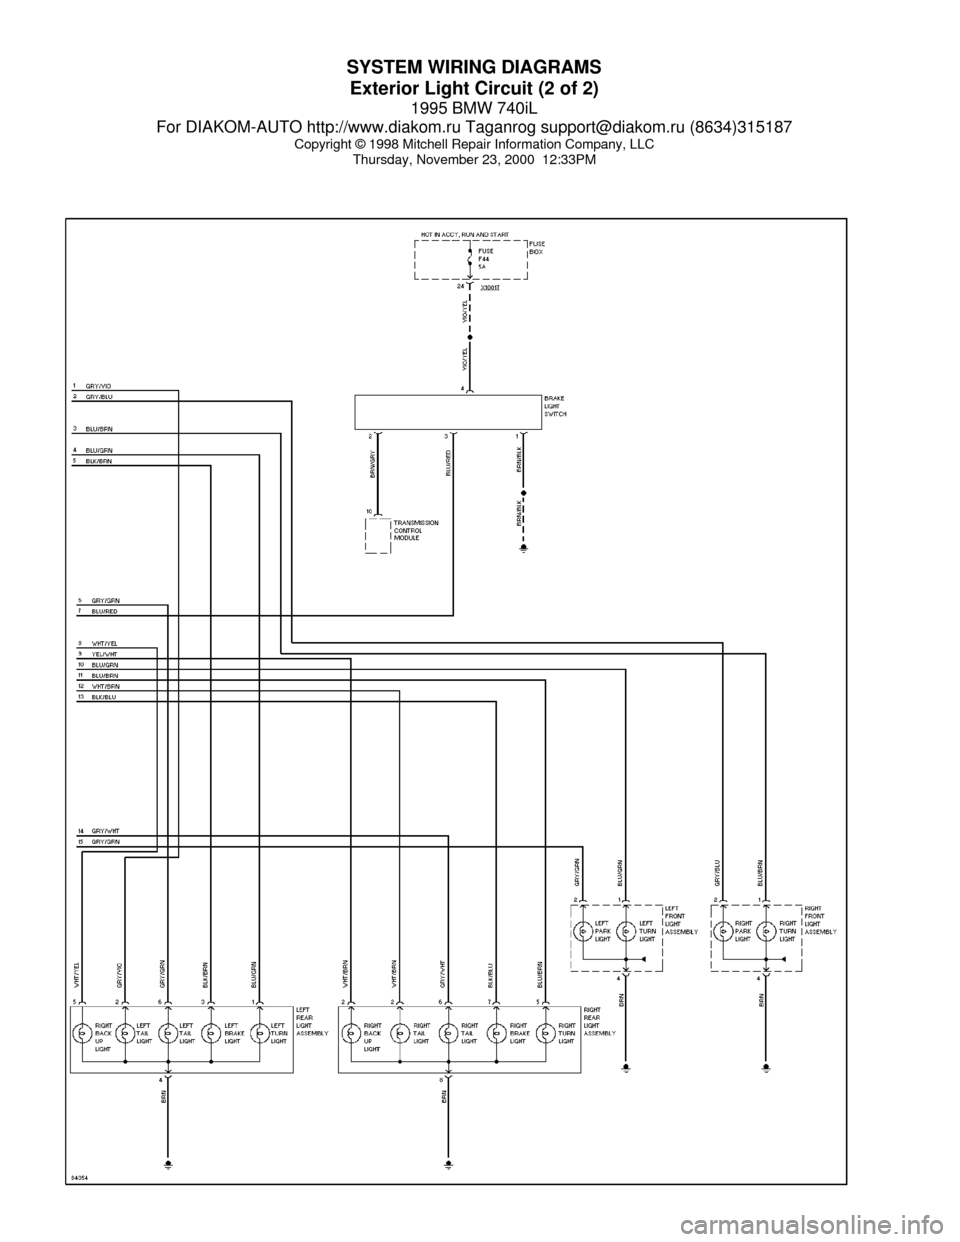 medium resolution of 1993 bmw 740il wiring diagram simple wiring schema dodge fuse diagram fuse diagram bmw 740il